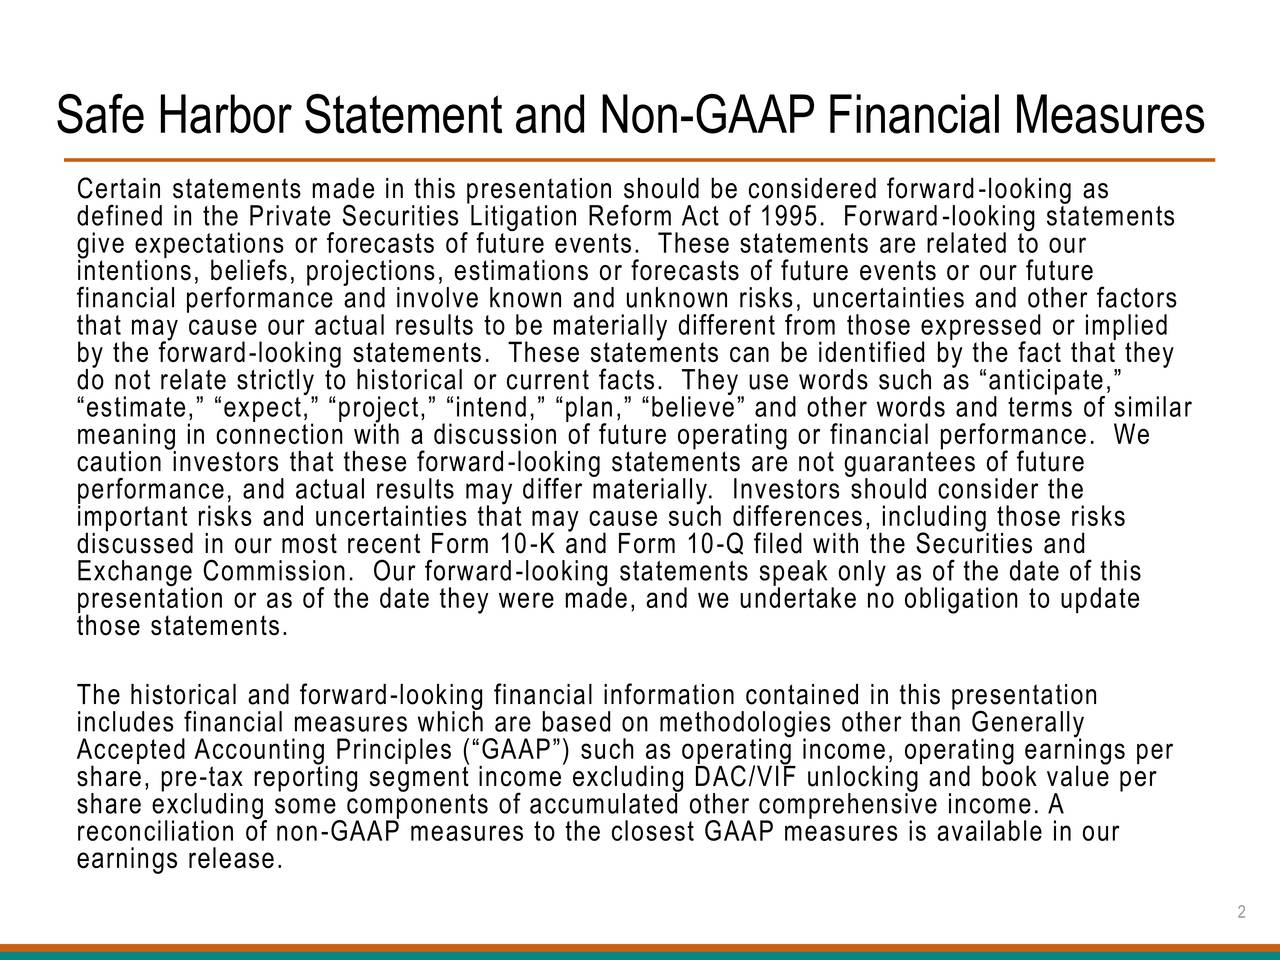 Certain statements made in this presentation should be considered forward-looking as defined in the Private Securities Litigation Reform Act of 1995. Forward-looking statements give expectations or forecasts of future events. These statements are related to our intentions, beliefs, projections, estimations or forecasts of future events or our future financial performance and involve known and unknown risks, uncertainties and other factors that may cause our actual results to be materially different from those expressed or implied by the forward-looking statements. These statements can be identified by the fact that they do not relate strictly to historical or current facts. They use words such as anticipate, estimate, expect, project, intend, plan, believe and other words and terms of similar meaning in connection with a discussion of future operating or financial performance. We caution investors that these forward-looking statements are not guarantees of future performance, and actual results may differ materially. Investors should consider the important risks and uncertainties that may cause such differences, including those risks discussed in our most recent Form 10-K and Form 10-Q filed with the Securities and Exchange Commission. Our forward-looking statements speak only as of the date of this presentation or as of the date they were made, and we undertake no obligation to update those statements. The historical and forward-looking financial information contained in this presentation includes financial measures which are based on methodologies other than Generally Accepted Accounting Principles (GAAP) such as operating income, operating earnings per share, pre-tax reporting segment income excluding DAC/VIF unlocking and book value per share excluding some components of accumulated other comprehensive income. A reconciliation of non-GAAP measures to the closest GAAP measures is available in our earnings release. 2